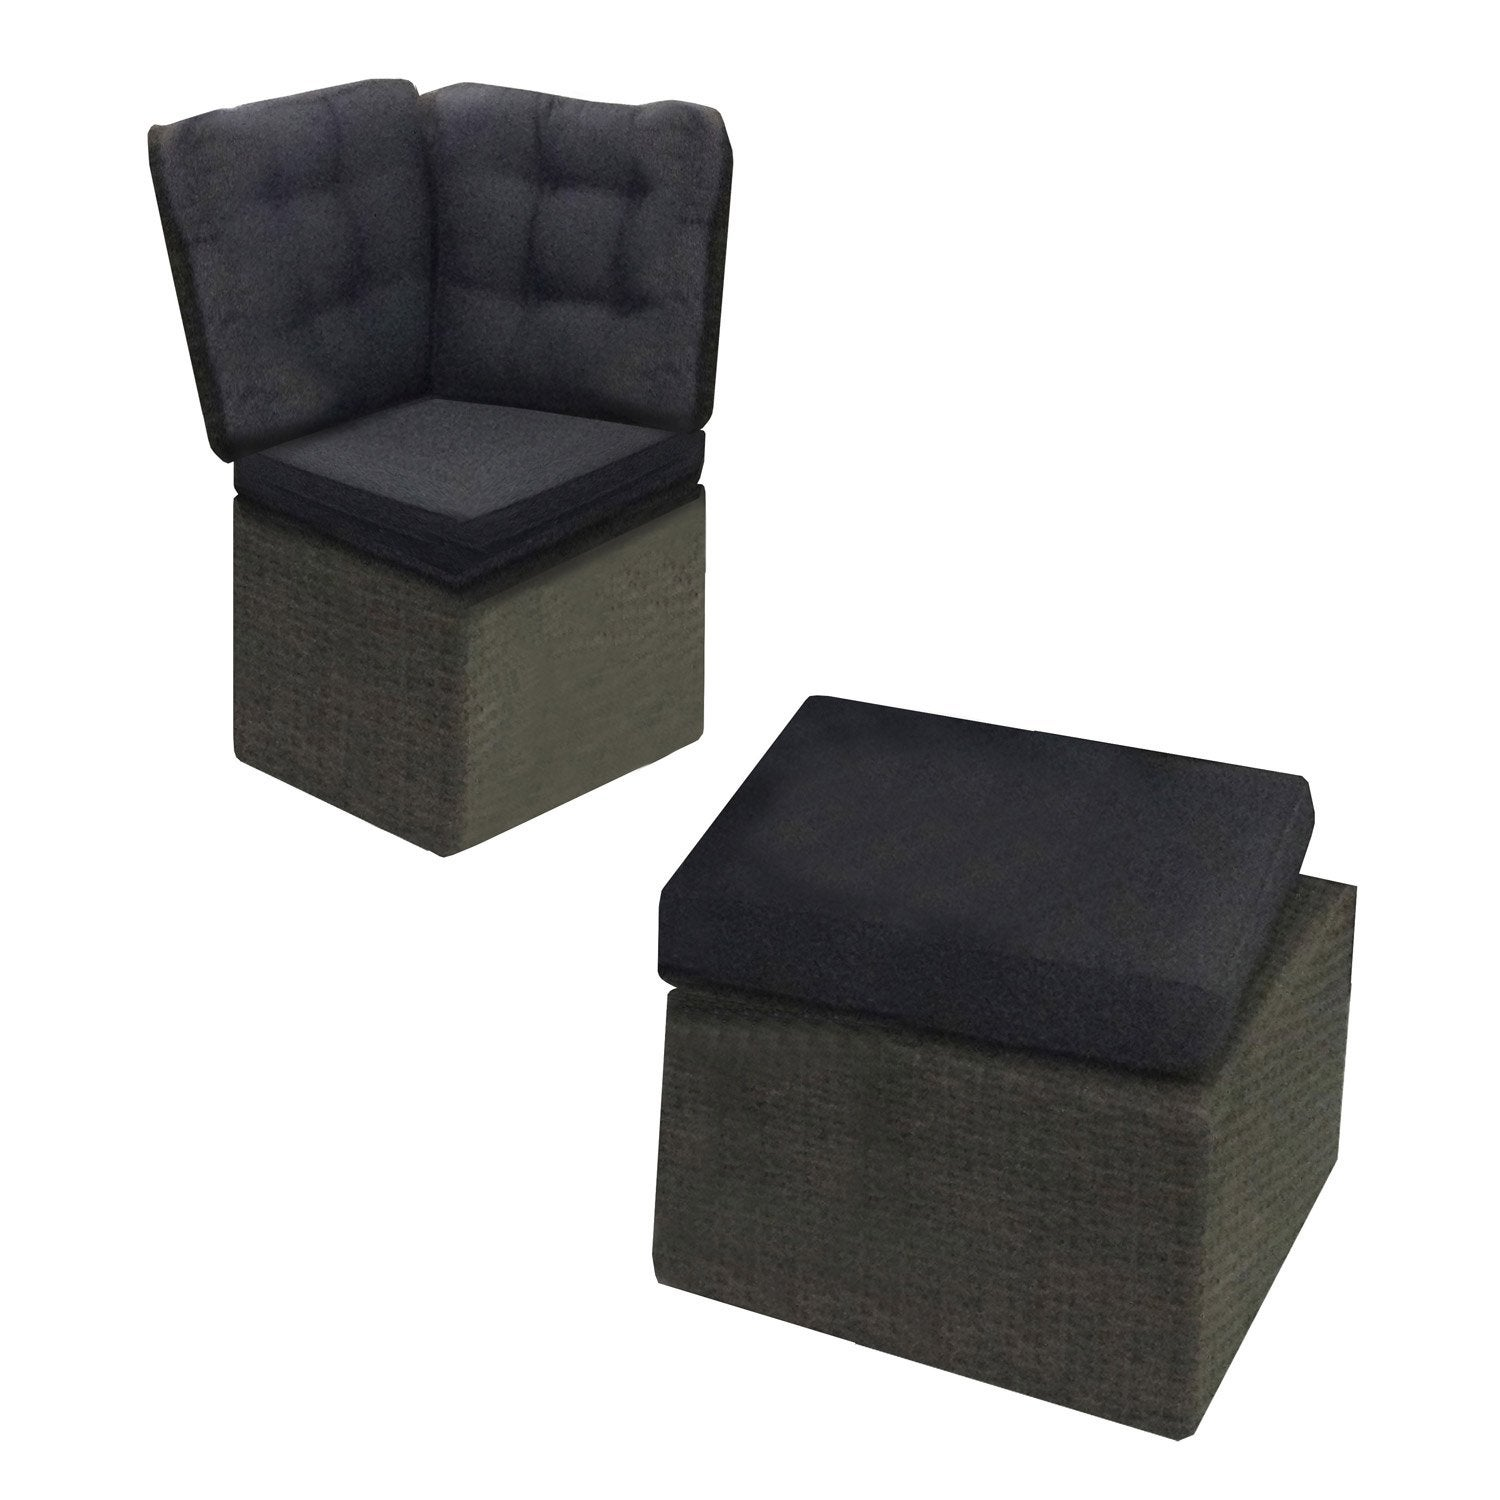 pouf et angle du canap pour salon de jardin daveport leroy merlin. Black Bedroom Furniture Sets. Home Design Ideas